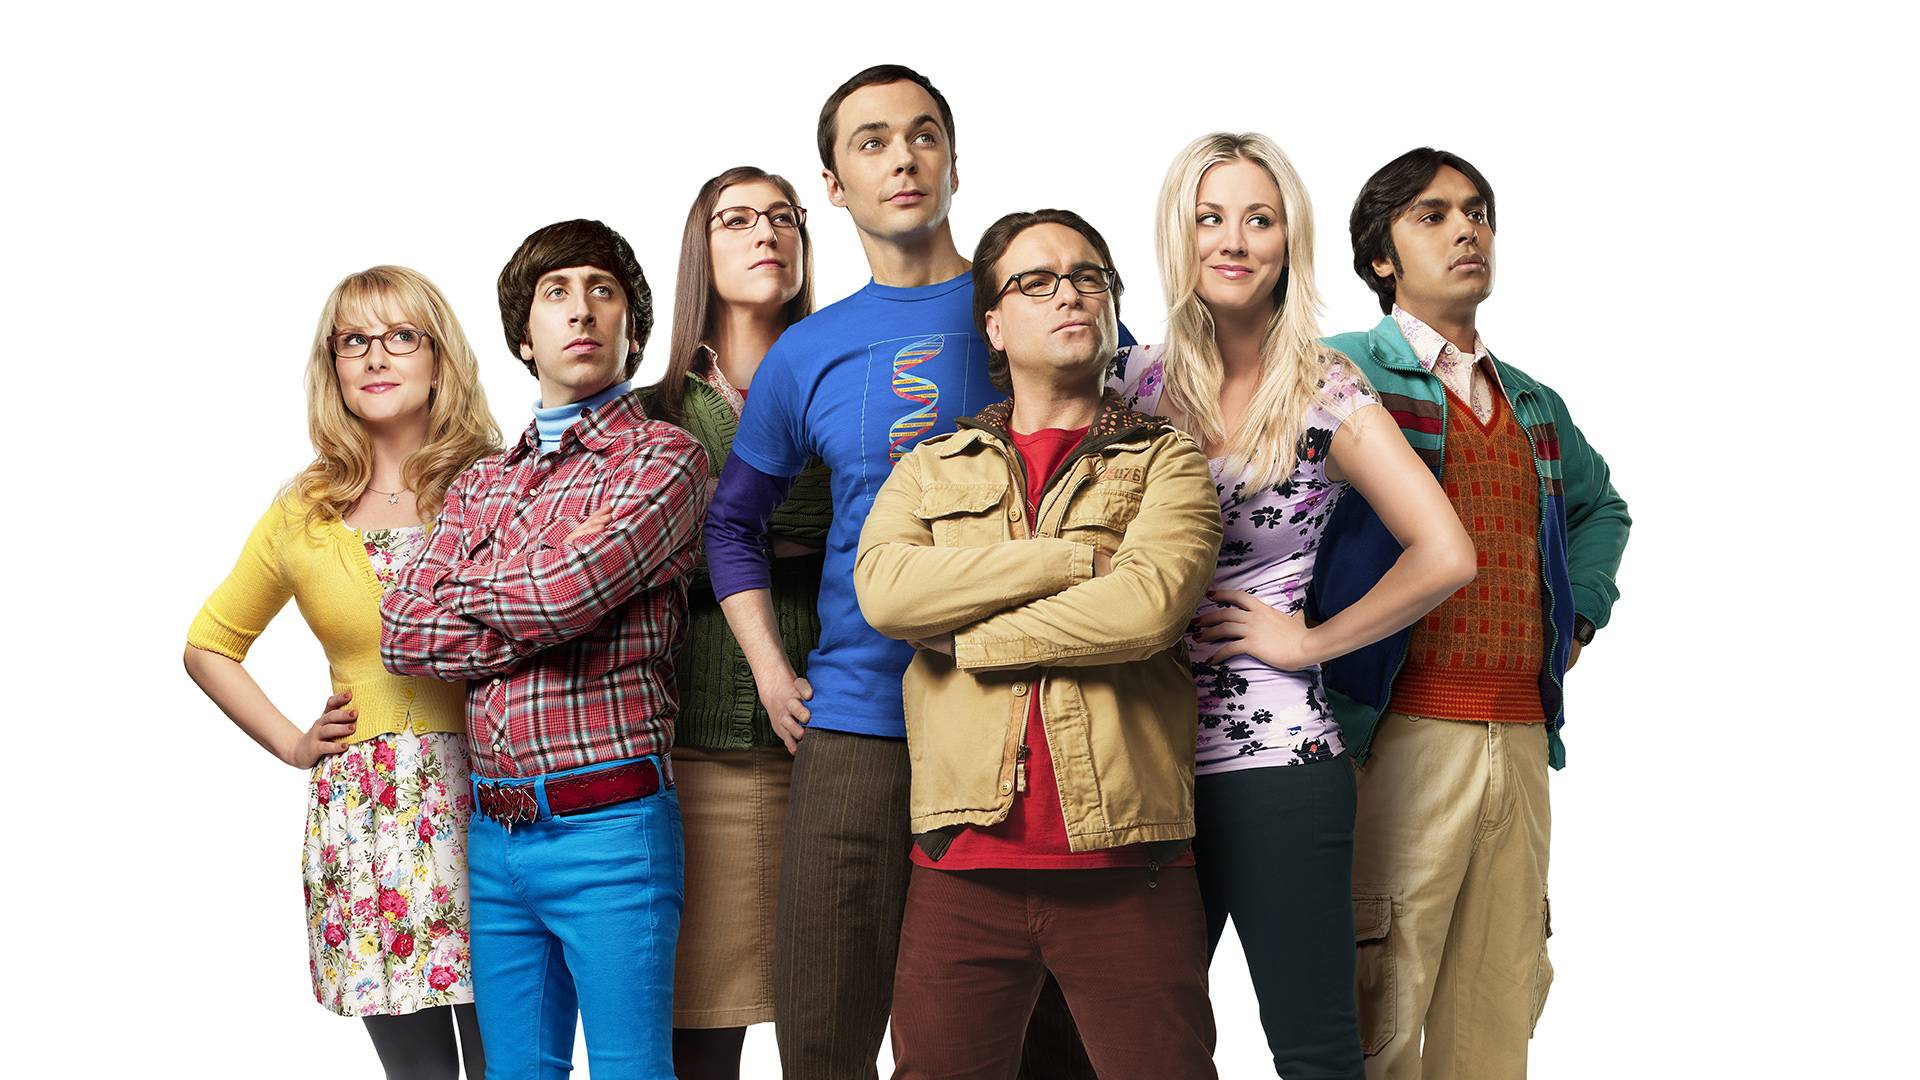 the big bang theory serien ende nach staffel 10 beschlossen. Black Bedroom Furniture Sets. Home Design Ideas